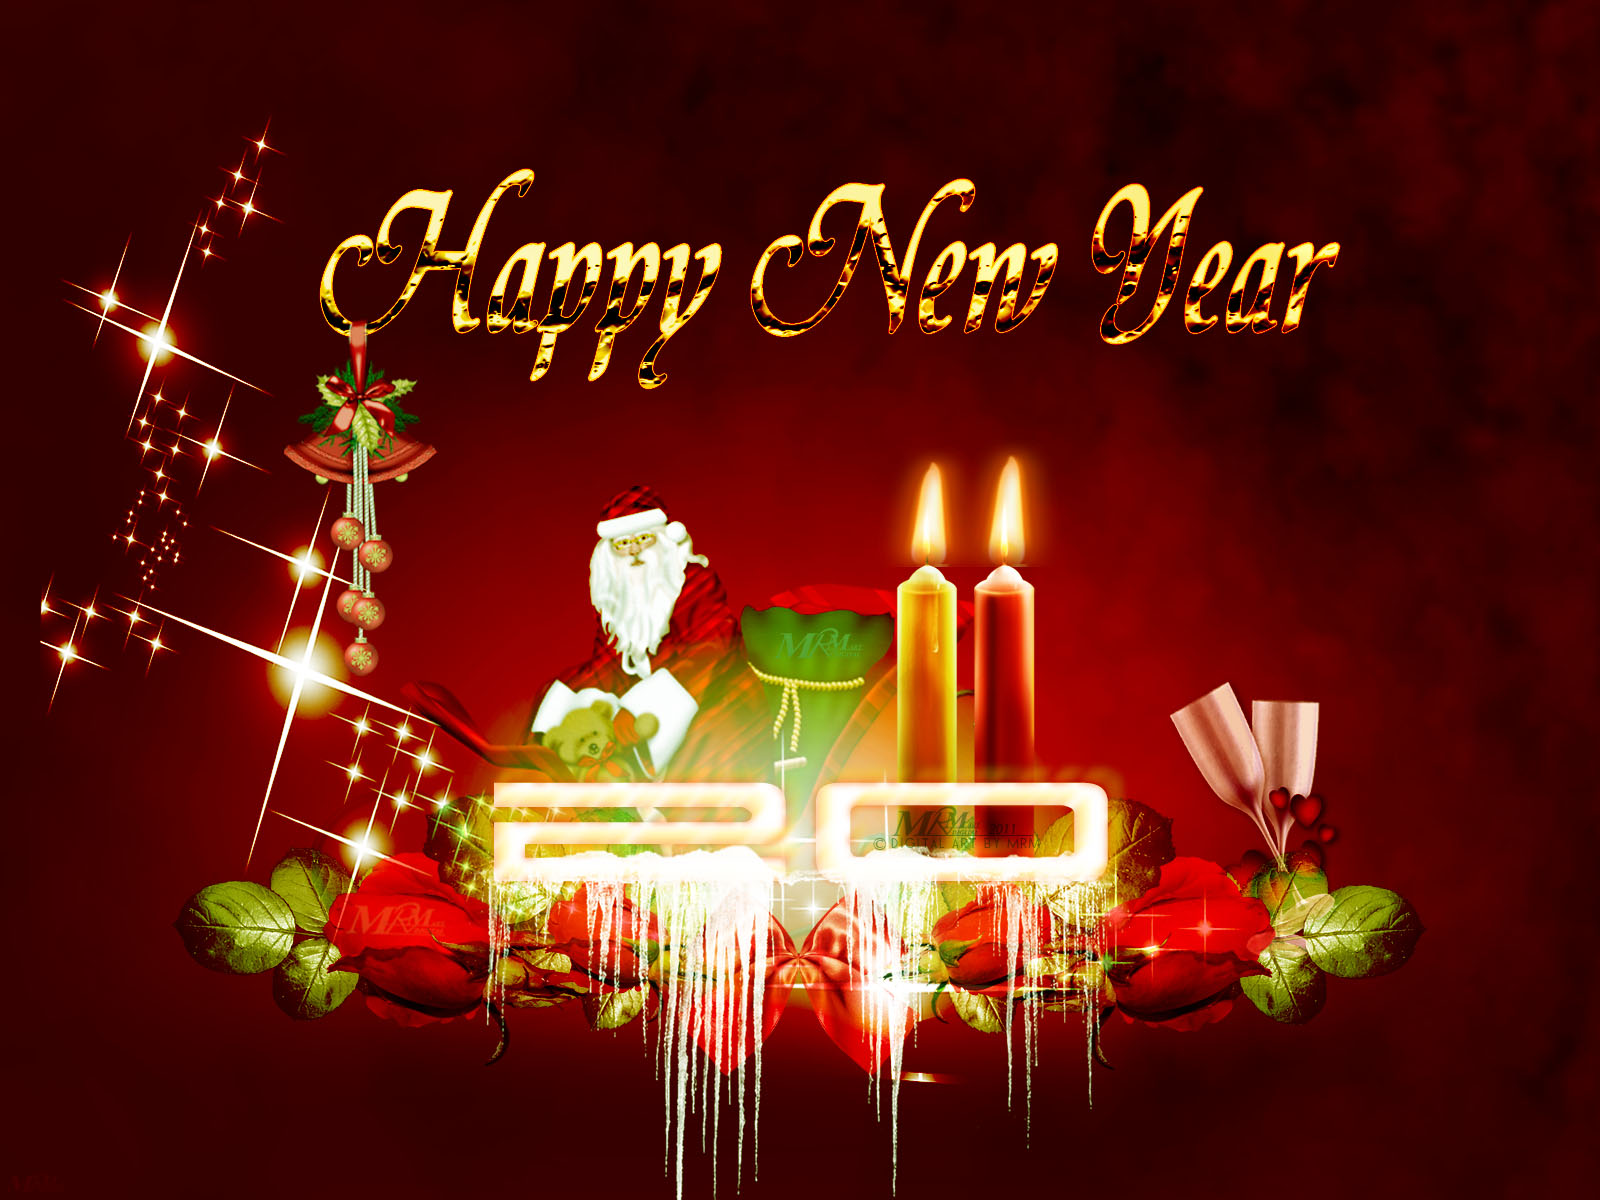 New year 2016 wallpapers wishes happy new year hd greeting cards happy new year hd greeting cards pics photos images m4hsunfo